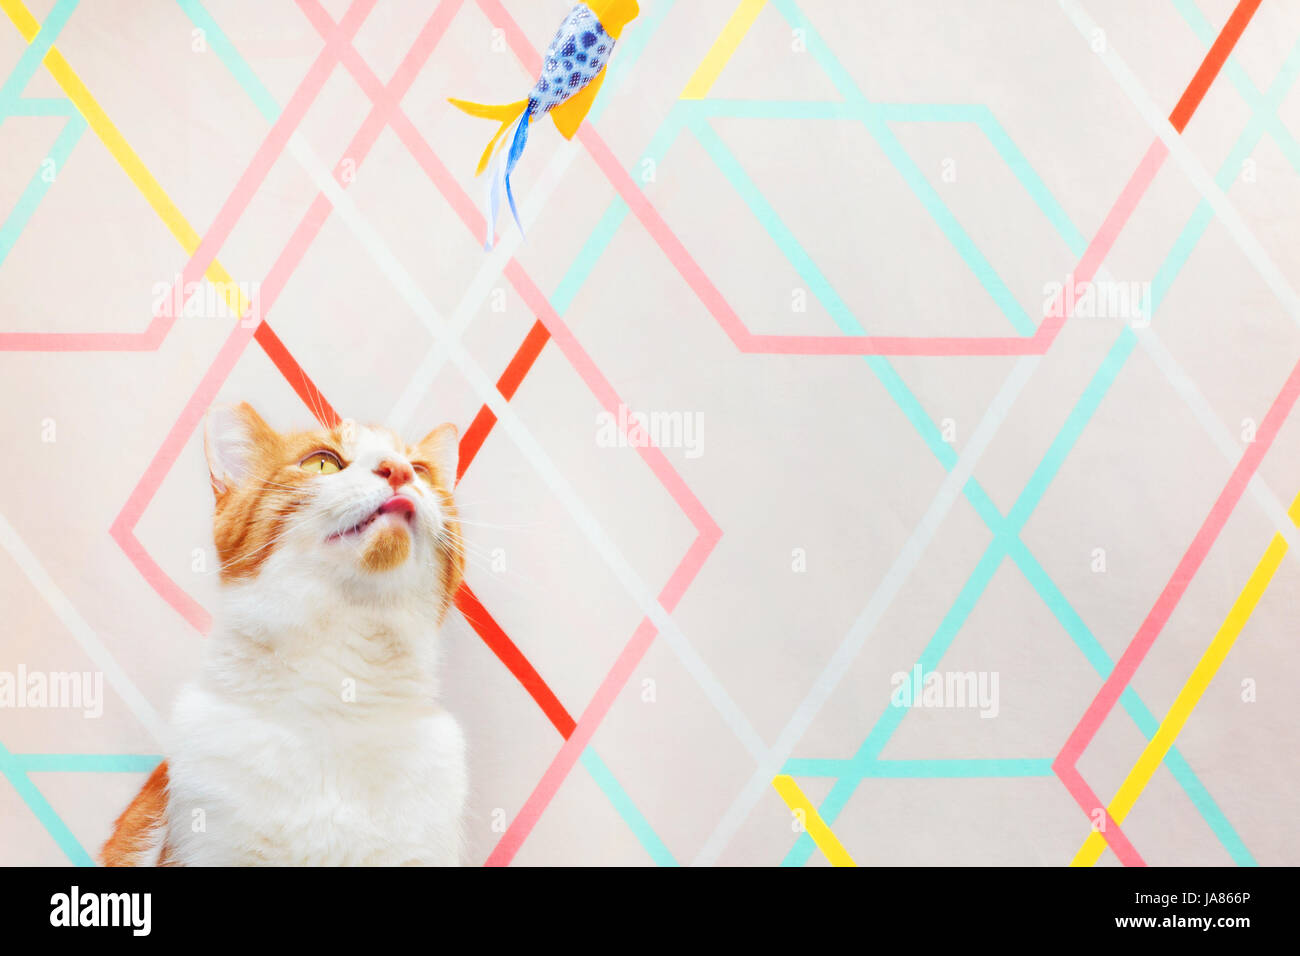 Colorful photograph of an orange and white cat looking upward and focusing on a cat toy overhead. Modern, geometric - Stock Image